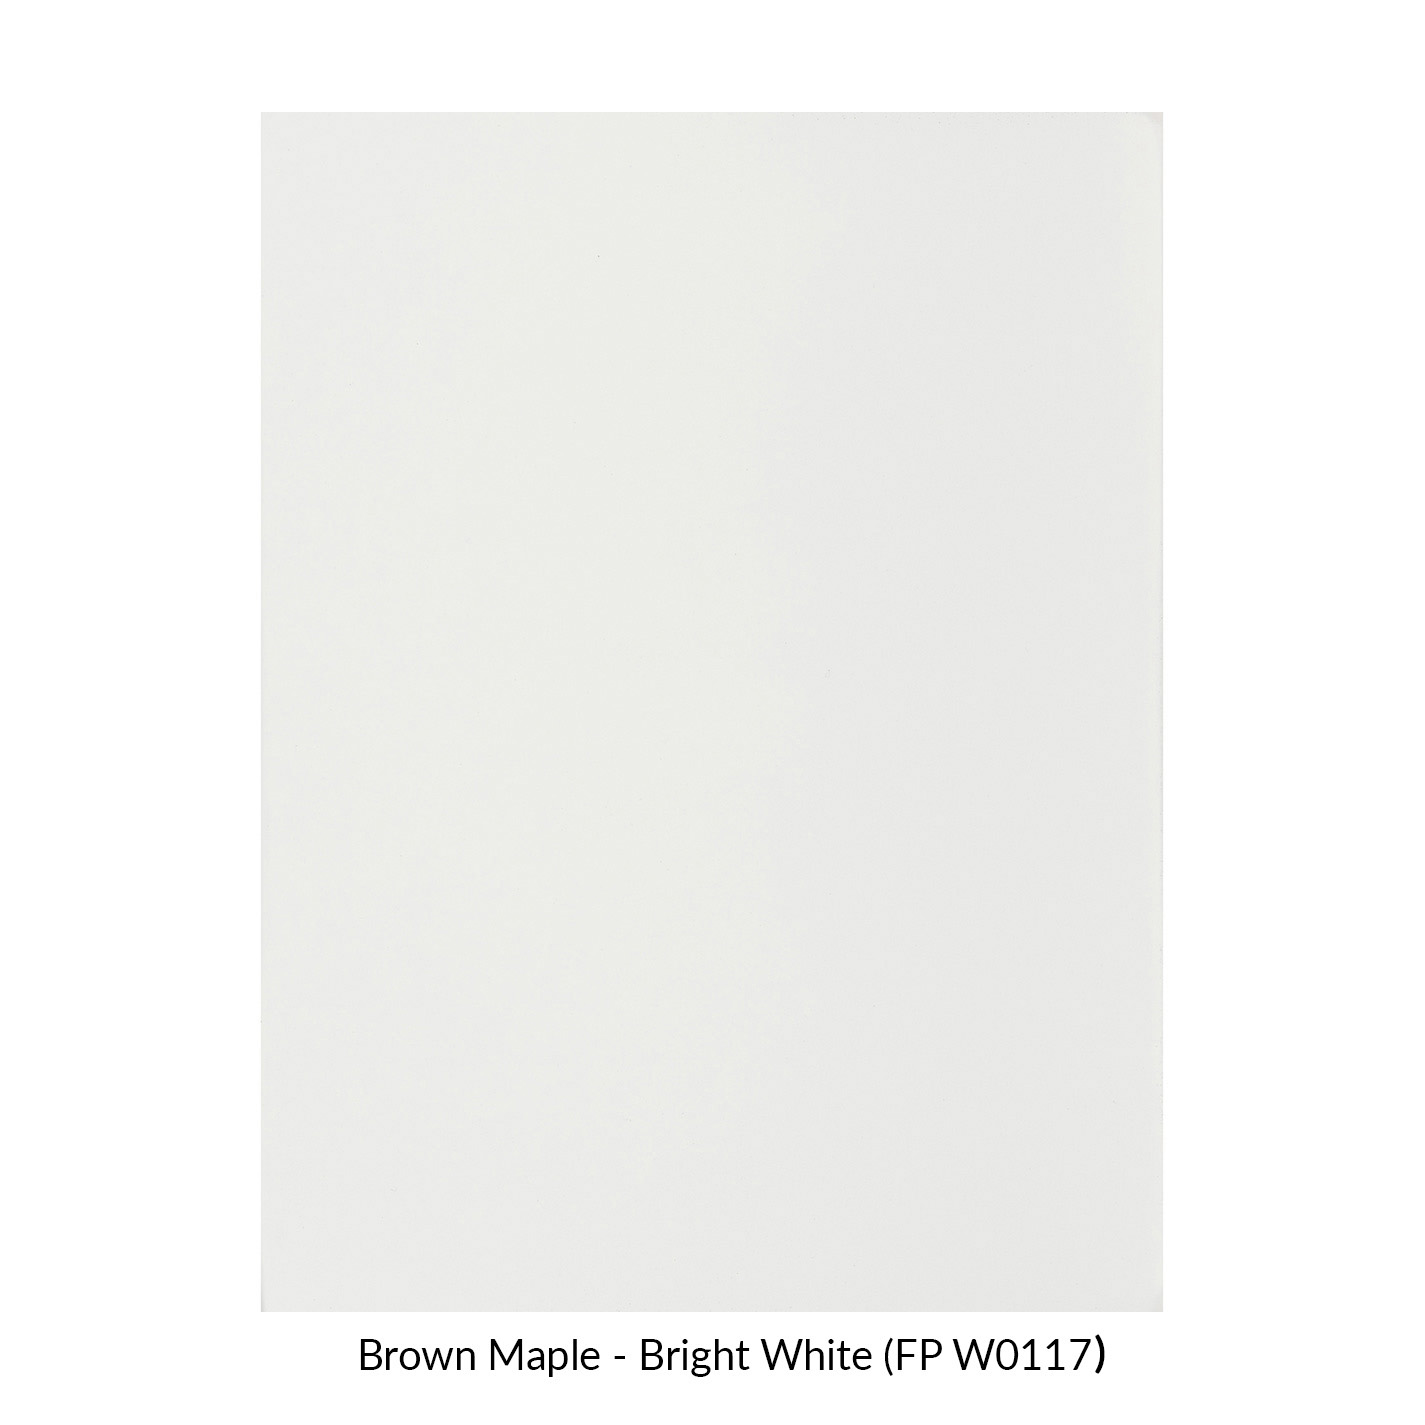 spectrum-brown-maple-bright-white.jpg